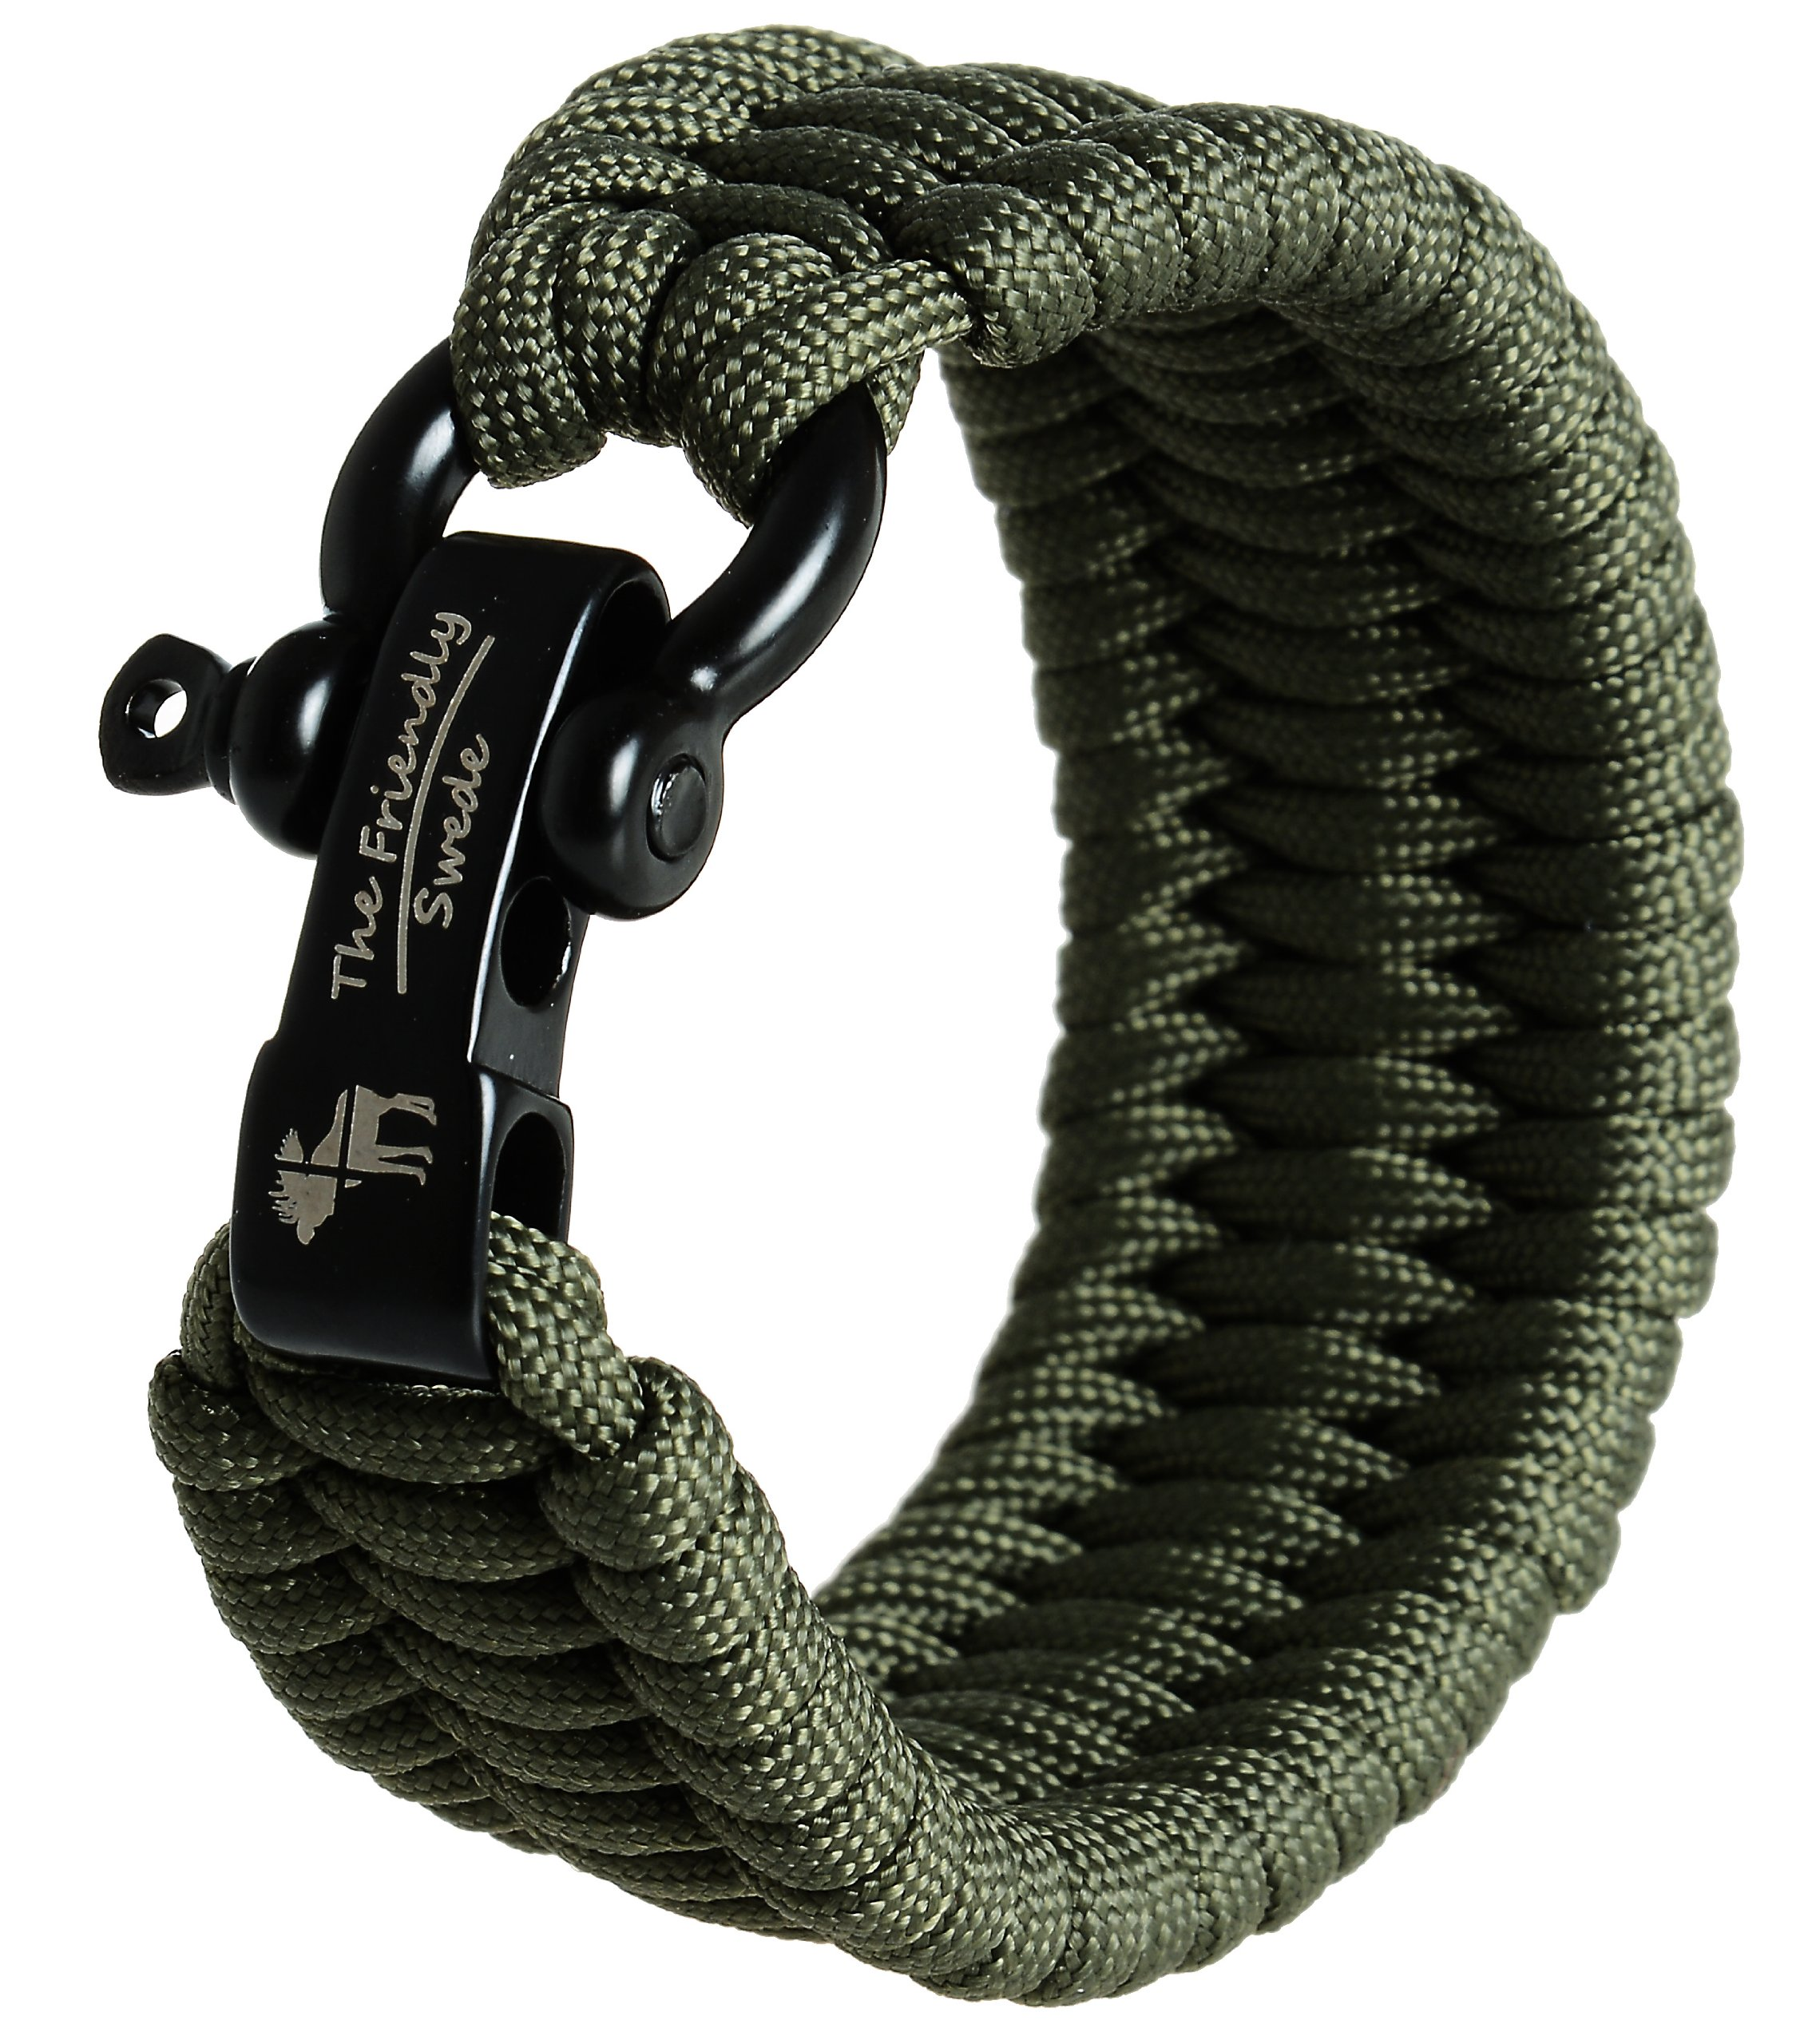 The Friendly Swede Trilobite Extra Beefy 550 lb Paracord Survival Bracelet with Stainless Steel Black Bow Shackle, Available in 3 Adjustable Sizes (Army Green, fits 8.5''-9.8'' wrists)